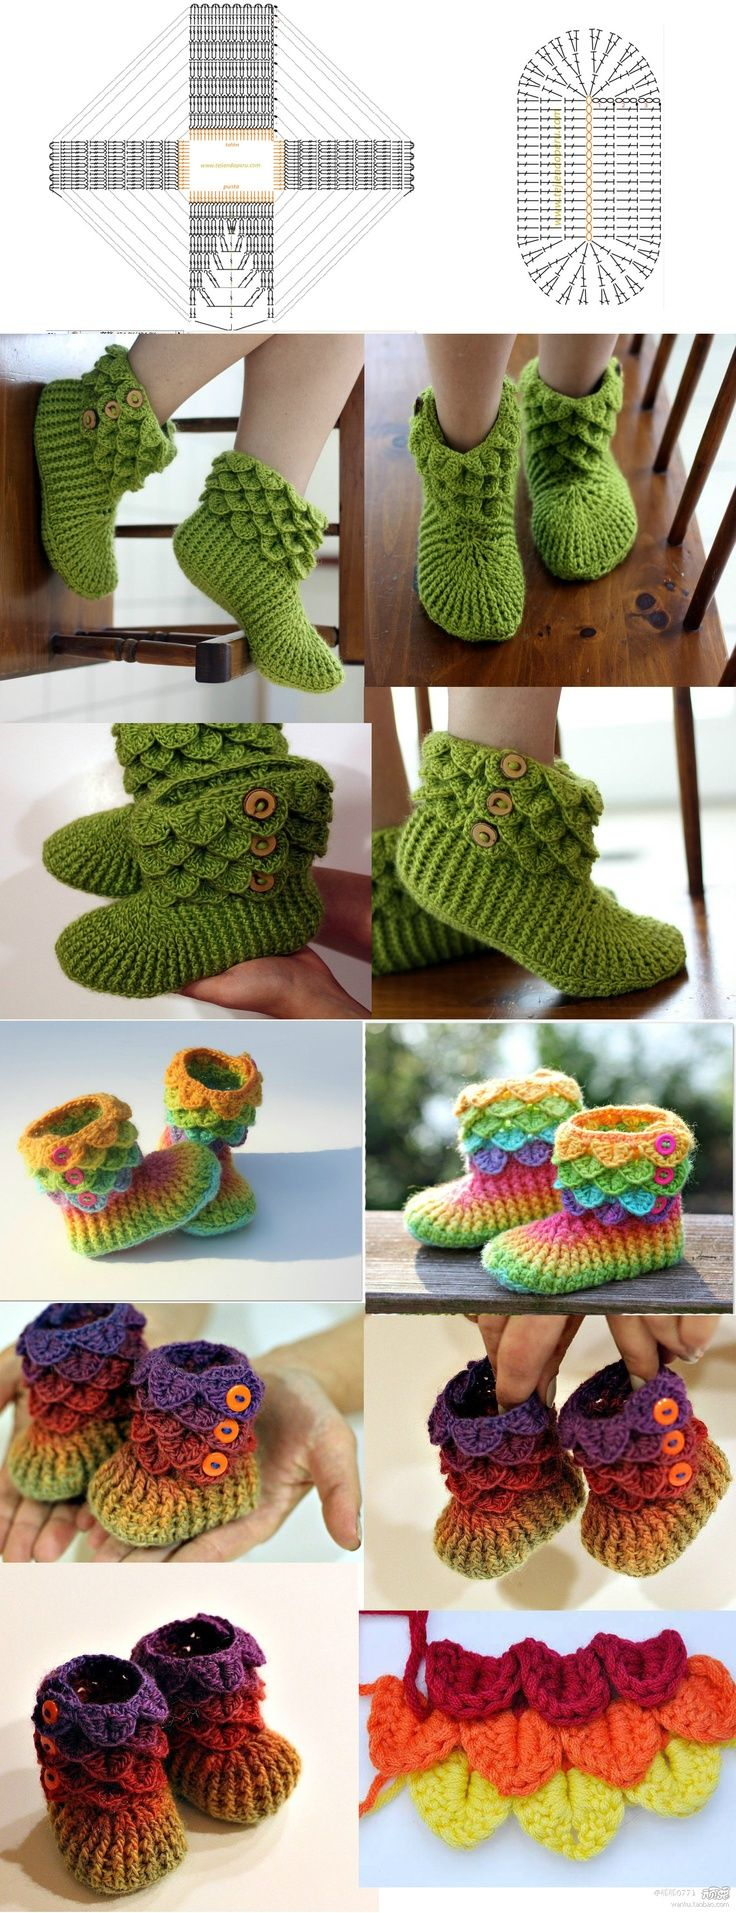 Best 25 diy crochet slippers ideas on pinterest diy crochet diy crochet booties slippers id only i could crochet u would make these bankloansurffo Image collections